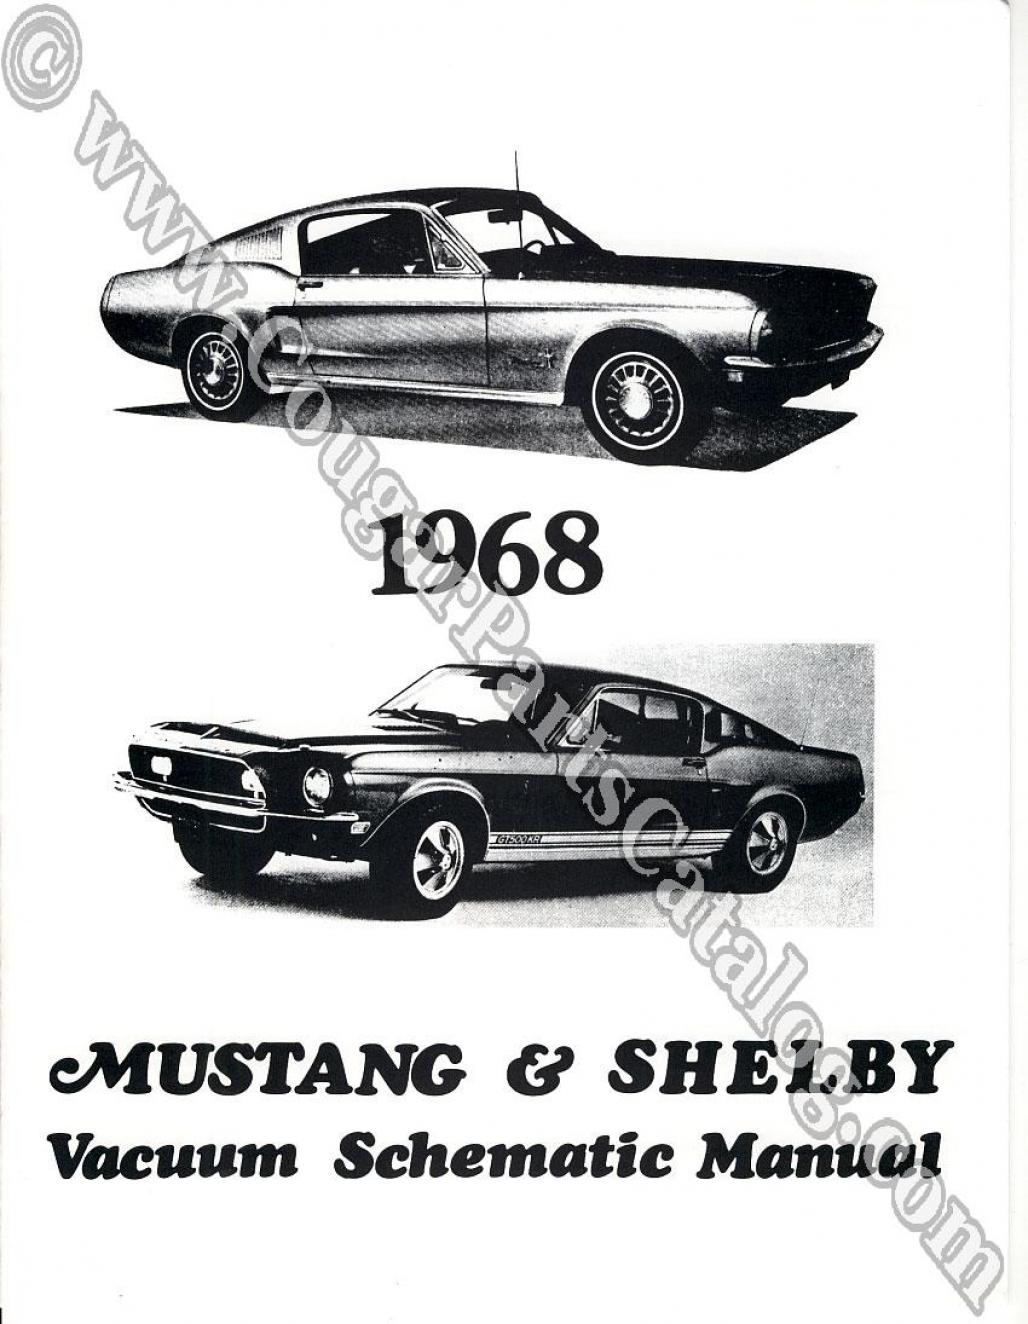 99 mustang headlight wiring diagram gm single wire alternator 1970 cougar vacuum free engine image for